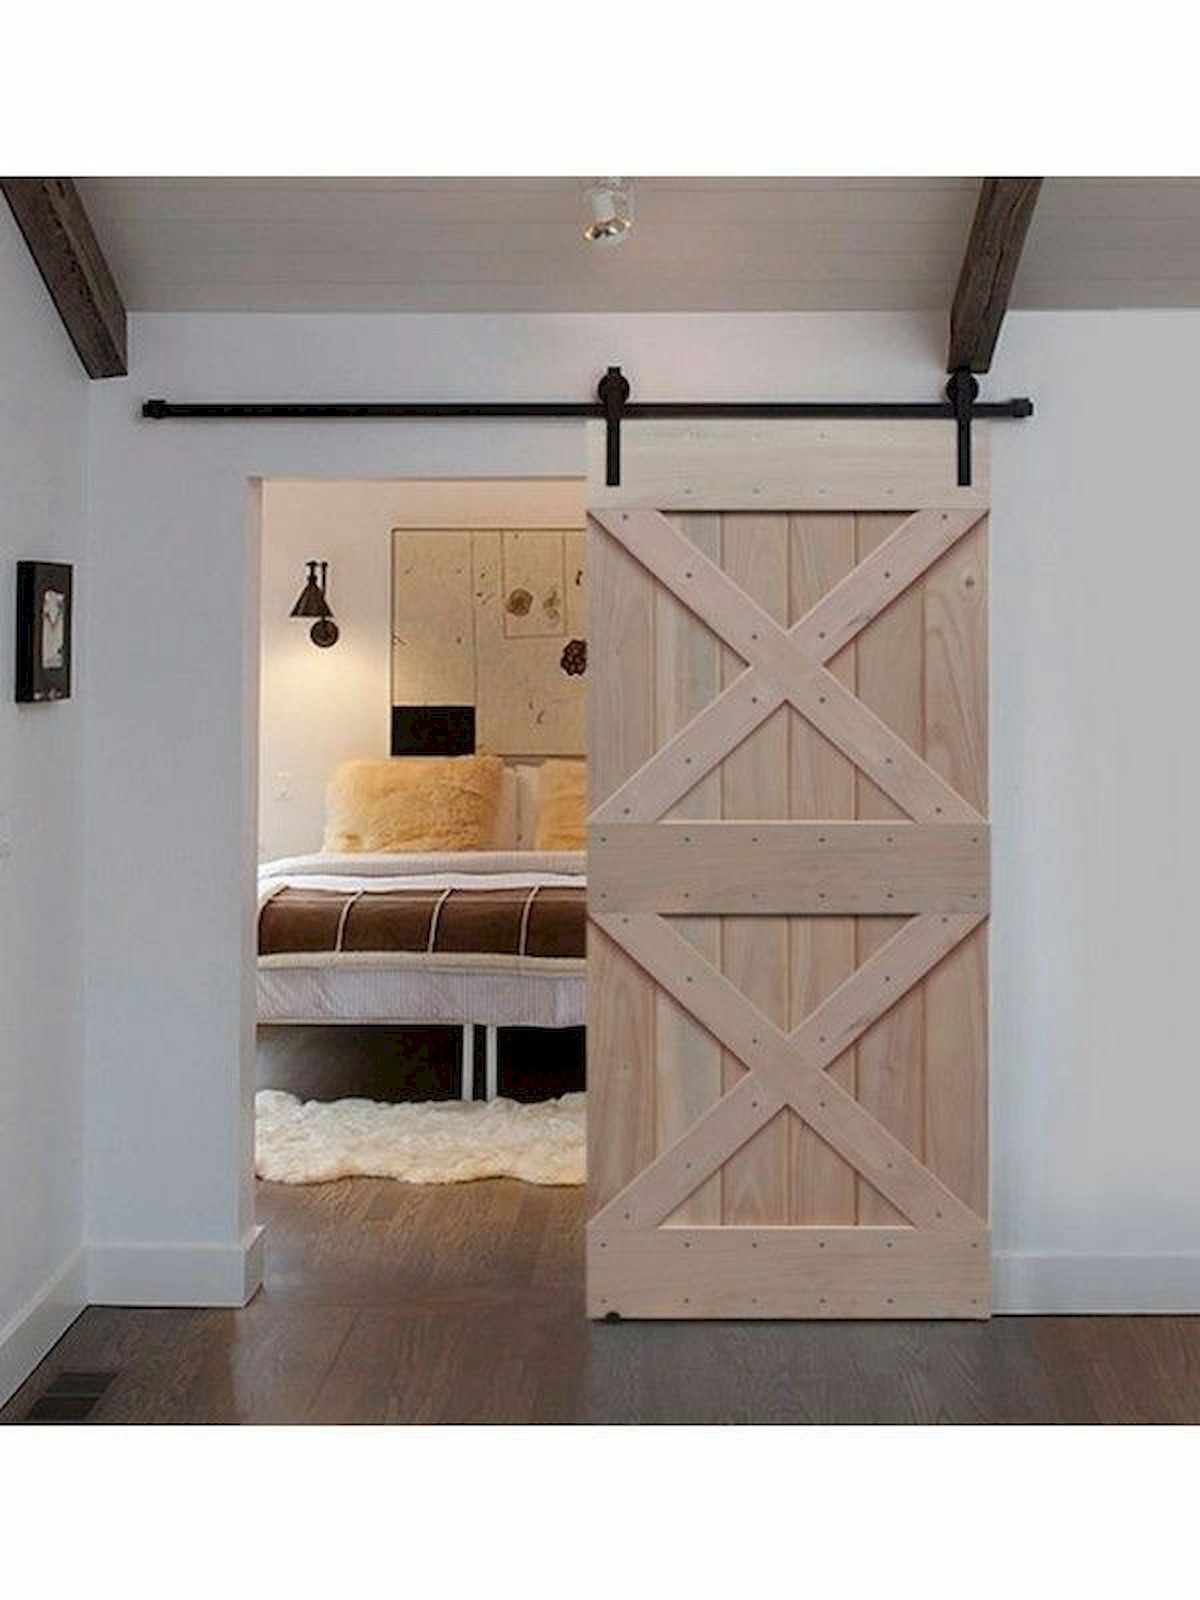 70 Rustic Home Decor Ideas for Doors and Windows (45)